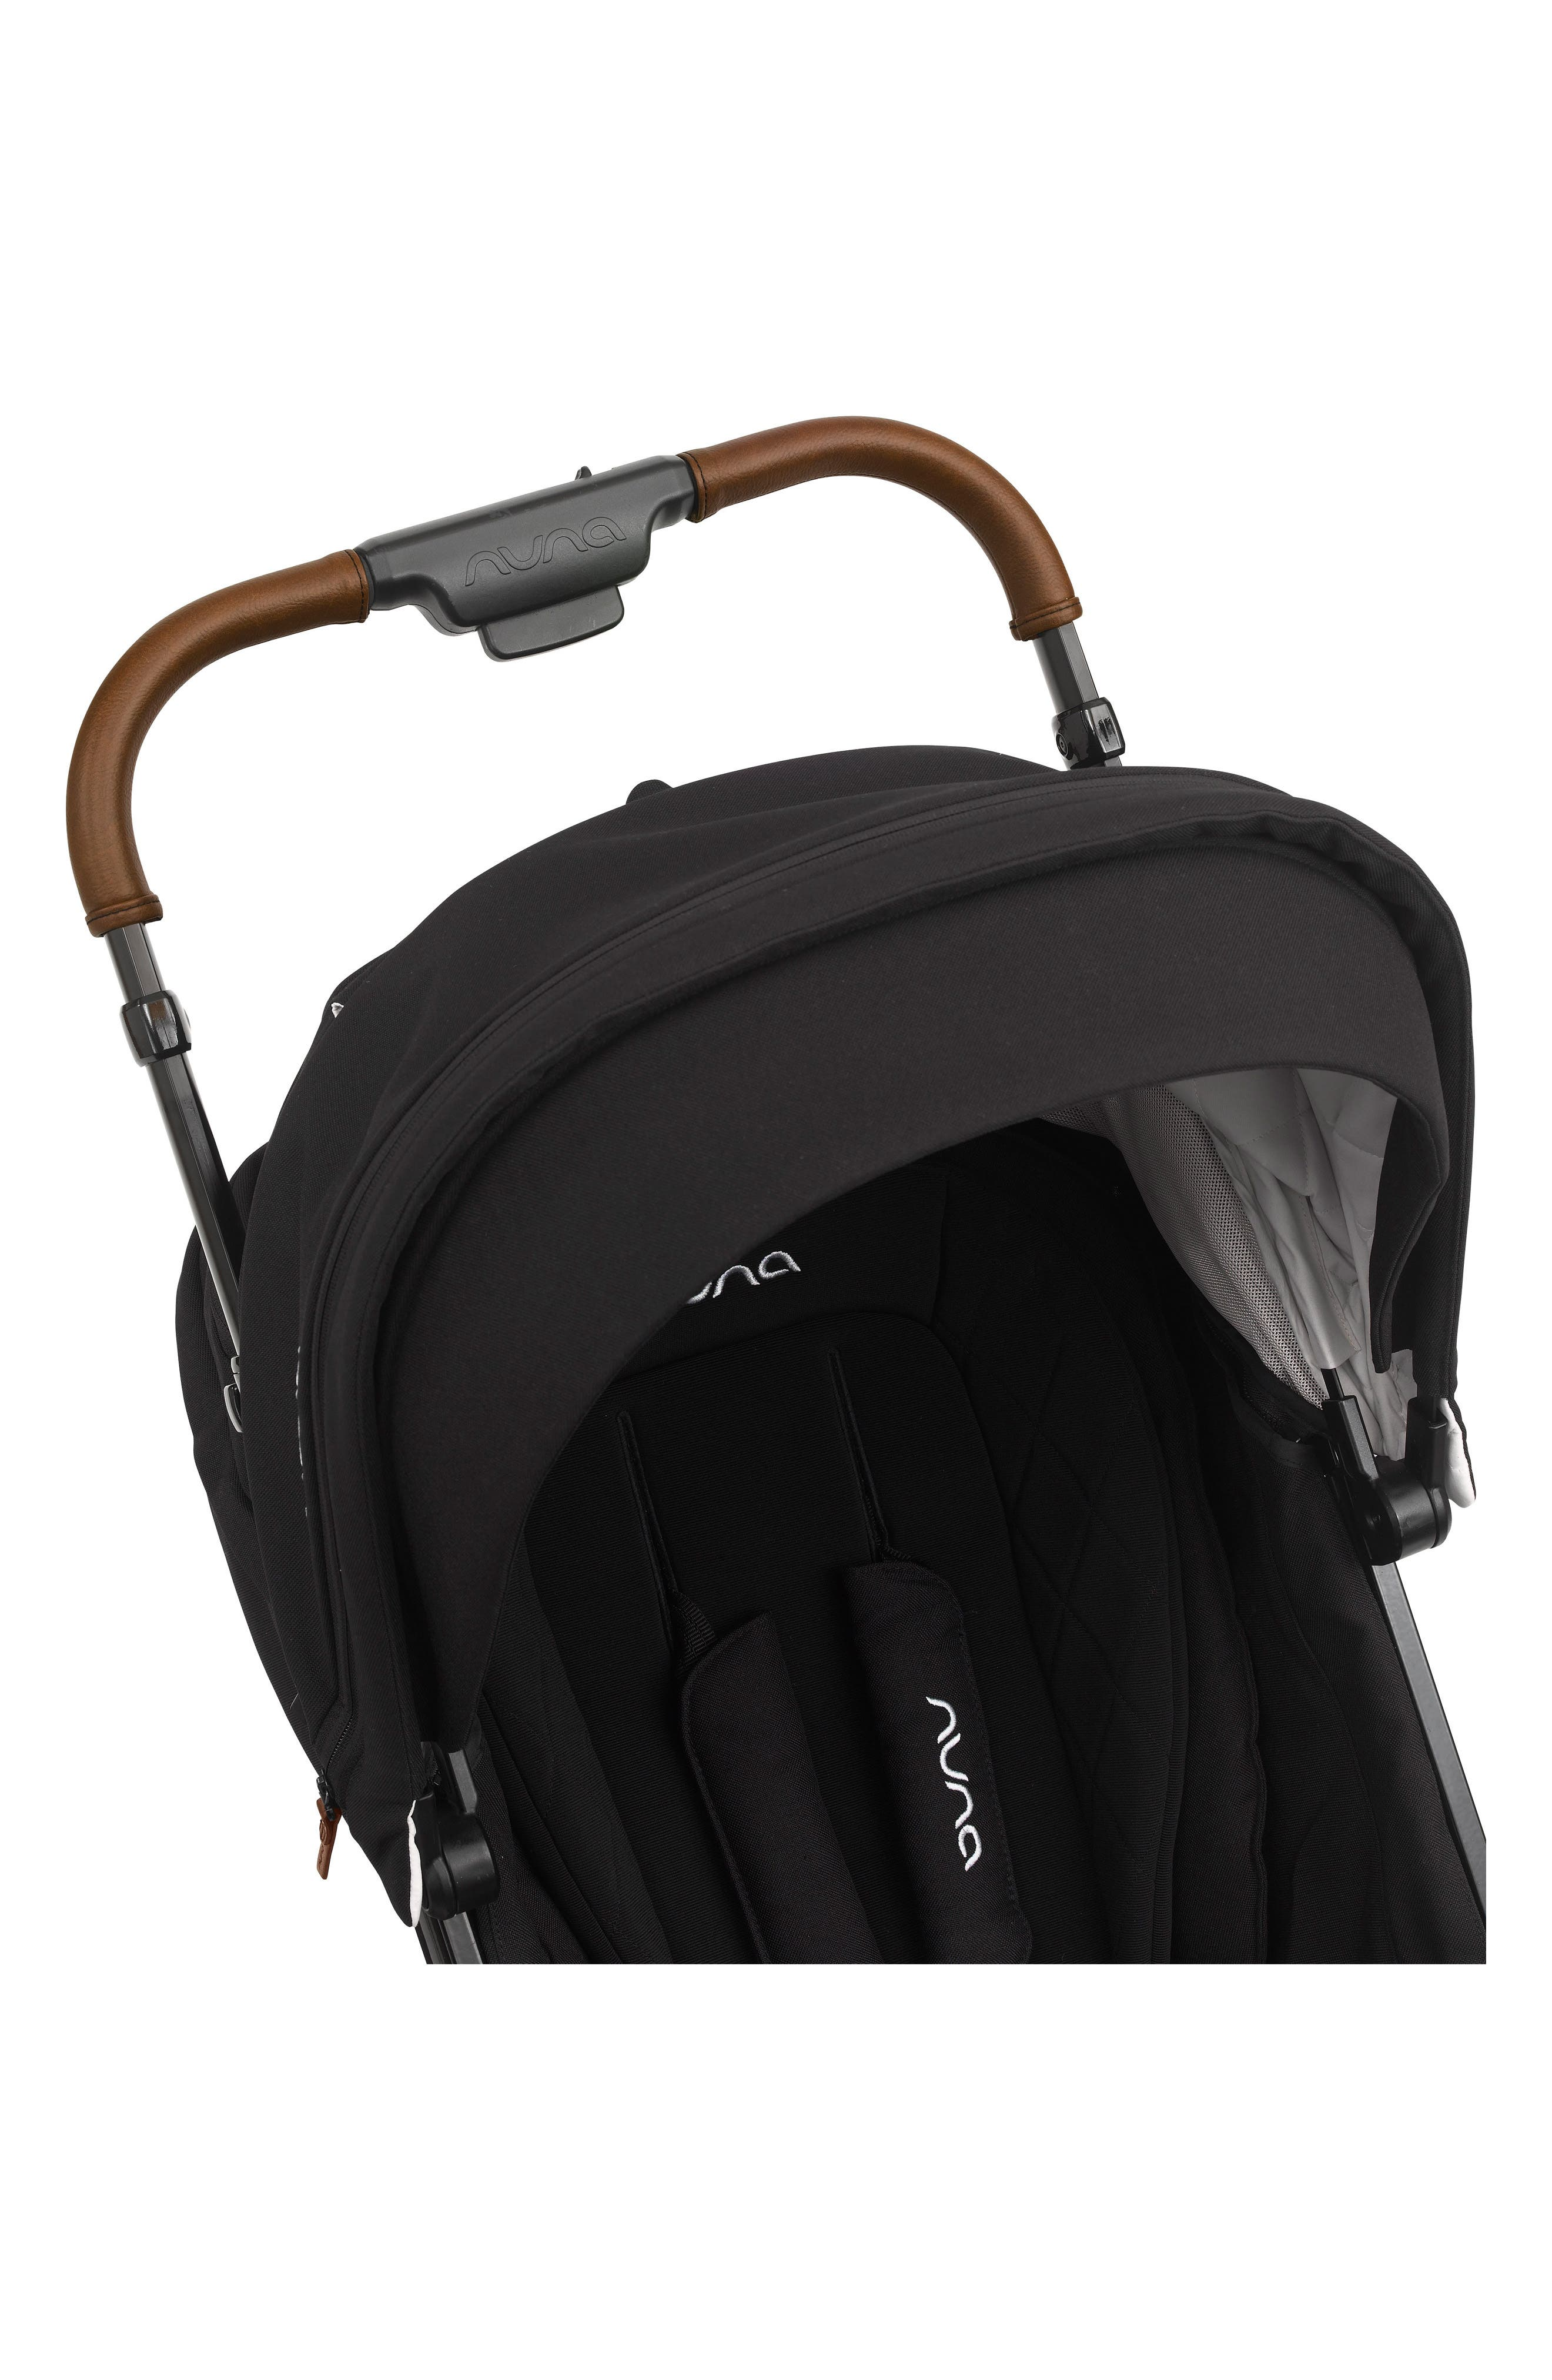 2019 TAVO<sup>™</sup> Stroller,                             Alternate thumbnail 5, color,                             CAVIAR